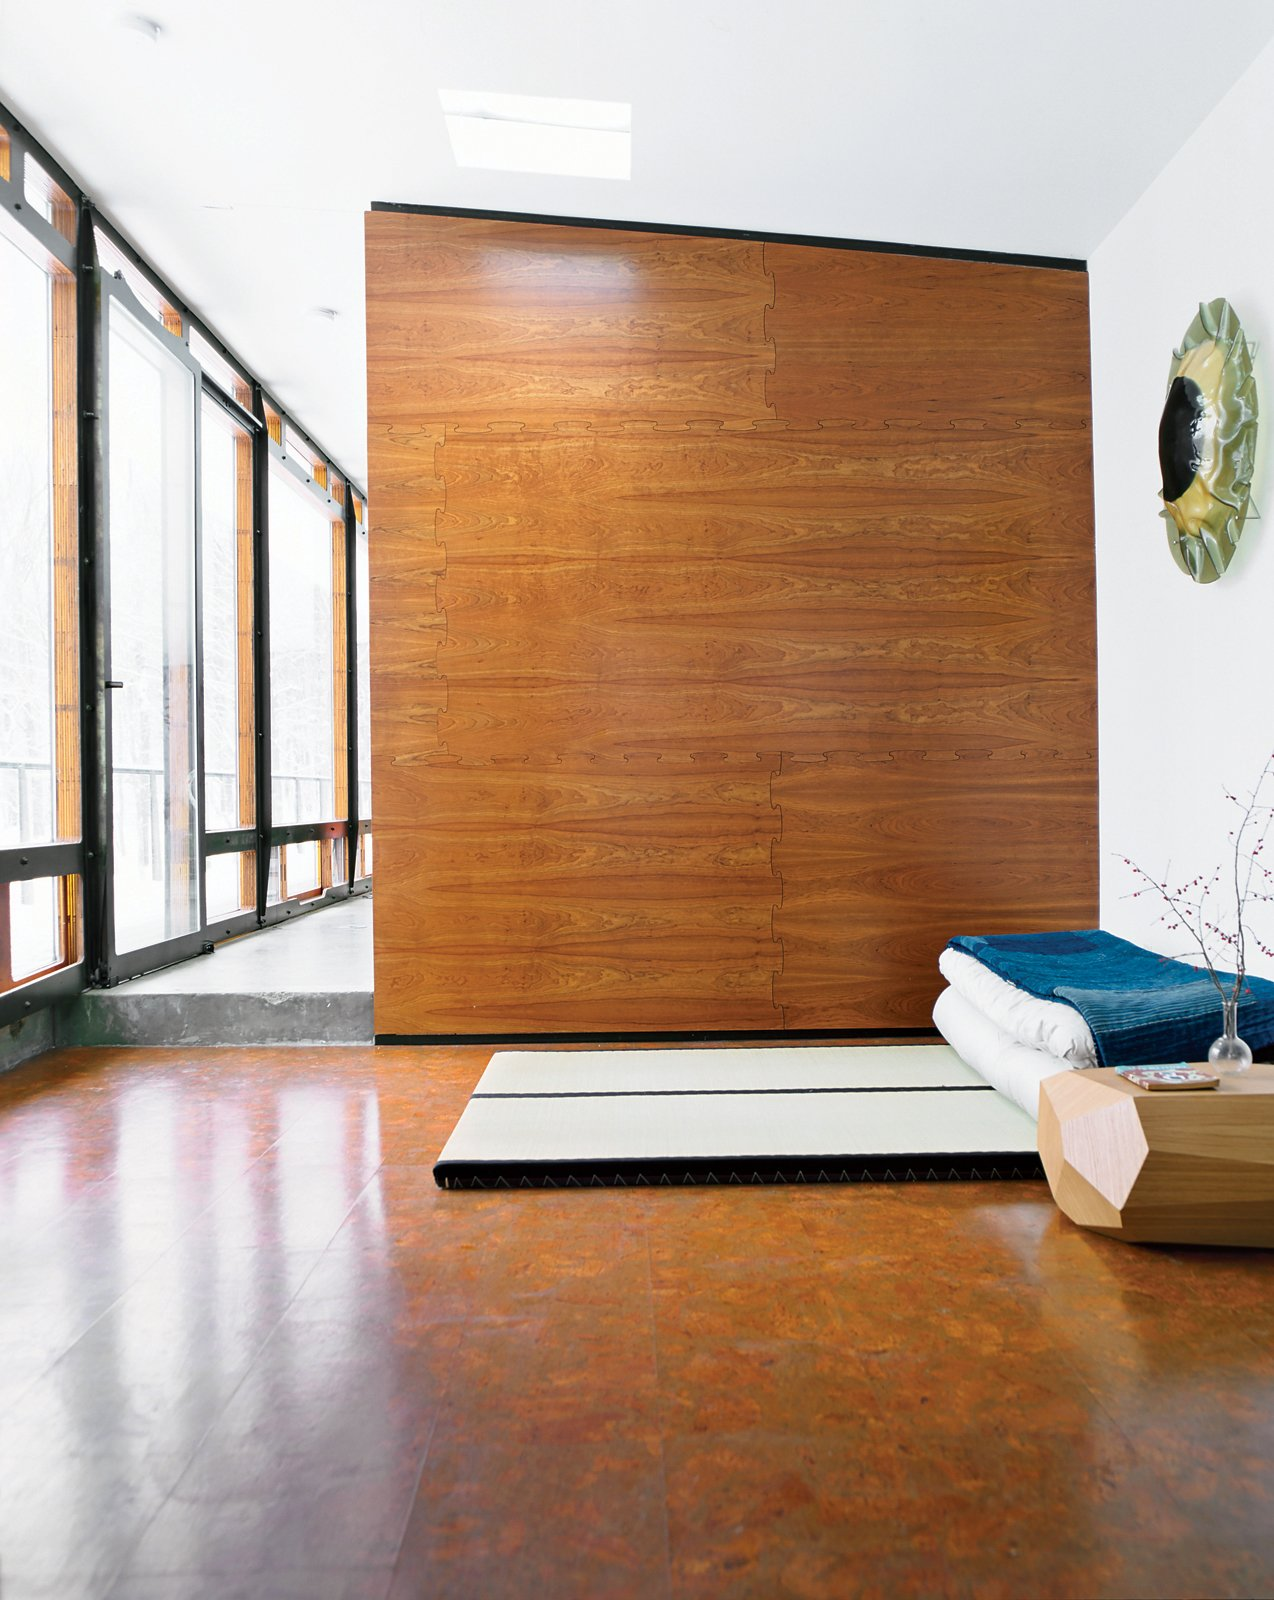 """Bedroom and Bed For one of two sleeping areas flanking the main living space, Wooten placed tatami from Miya Shoji on the cork floor. """"With the radiant heating system, it's fantastic to be in this glass box looking out at a blizzard, walking barefoot on the warm floor,"""" he says. """"Tatami are not for everyone, but they are really comfy to me. Before we built the house, I stayed at a traditional bed-and-breakfast in Kyoto, Japan, and had one of the best nights of sleep ever, so I decided I wanted to do that style of bed. On top is a 150-year-old Japanese denim patchwork quilt I bought from a friend who took me to Japan. I've always admired Japanese design—Noguchi is one of my favorites—so I was inspired to have that spirit in the house."""" miyashoji.com  Photo 11 of 12 in A Hybrid Prefab Home in Upstate New York"""